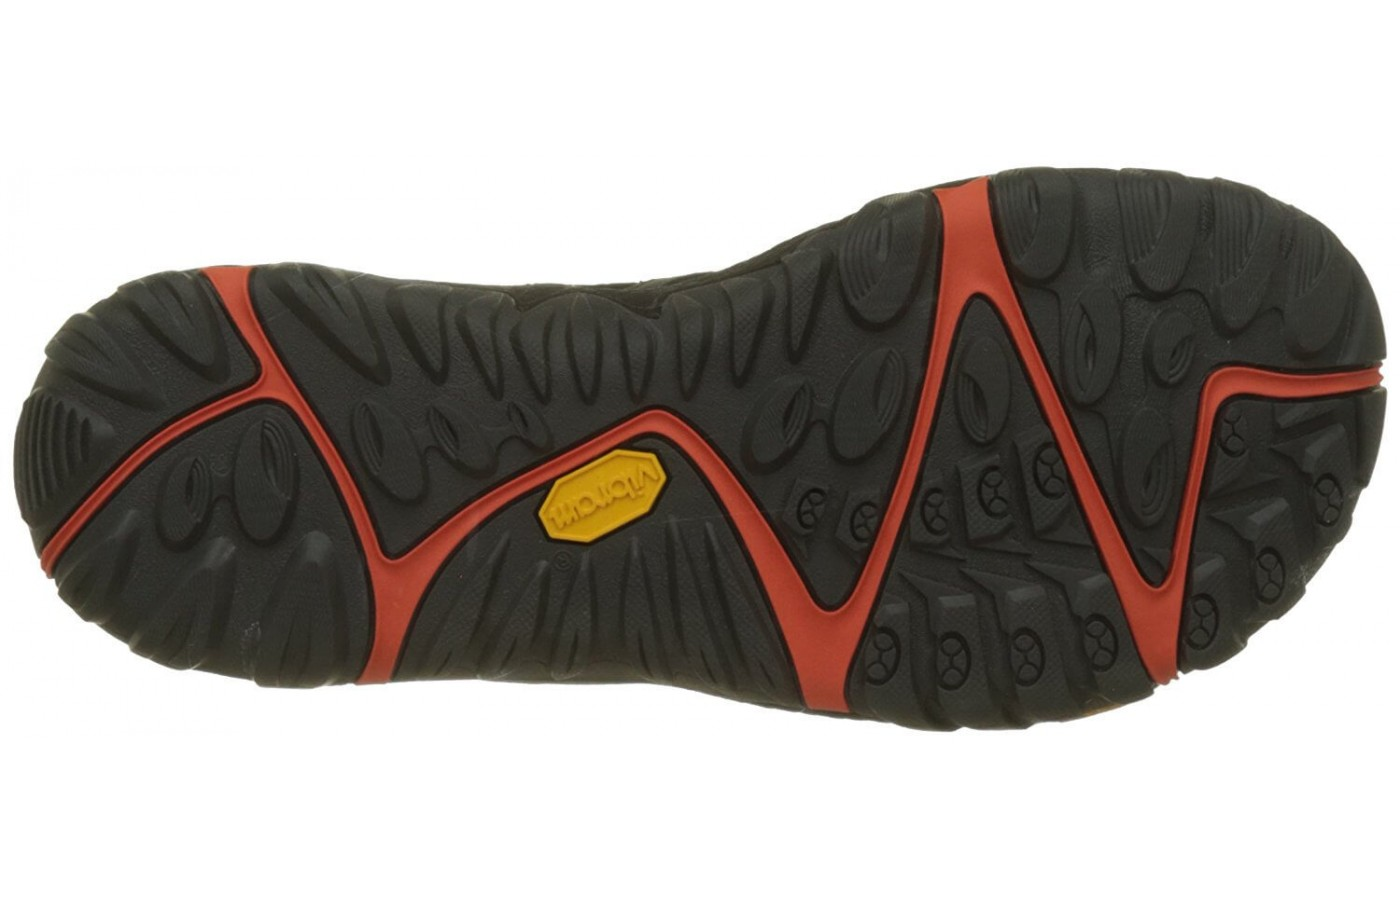 The Merrell All Out Blaze Sieve features a TC5+ Vibram brand outsole with 3mm lugs for a combination of durability and traction.